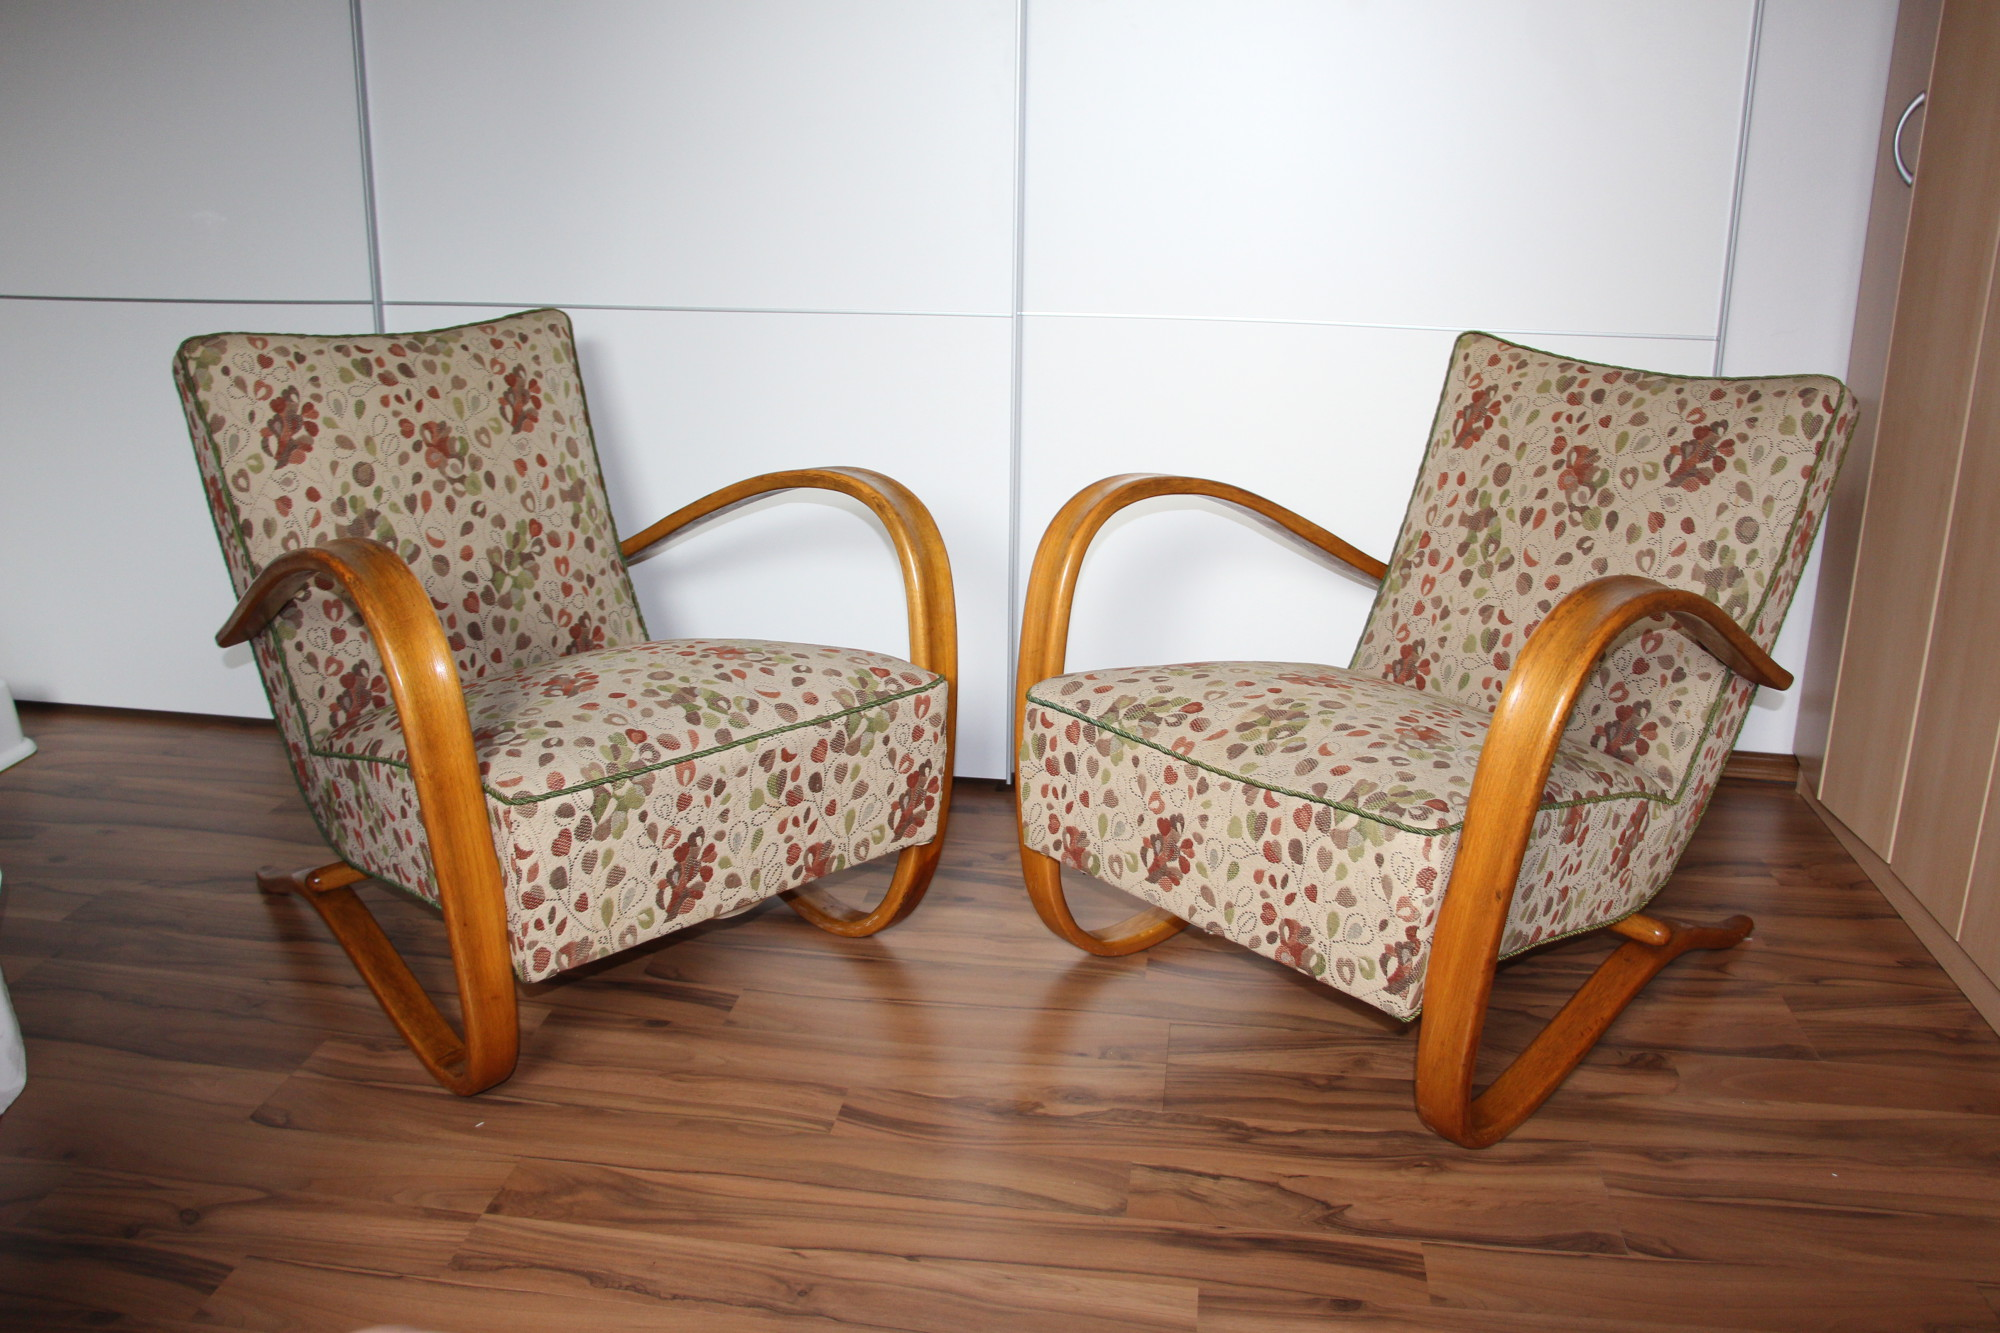 Design Sessel Retro Look 2 Halabala Sessel H269 Halabalas Armchairs Antik Zone At